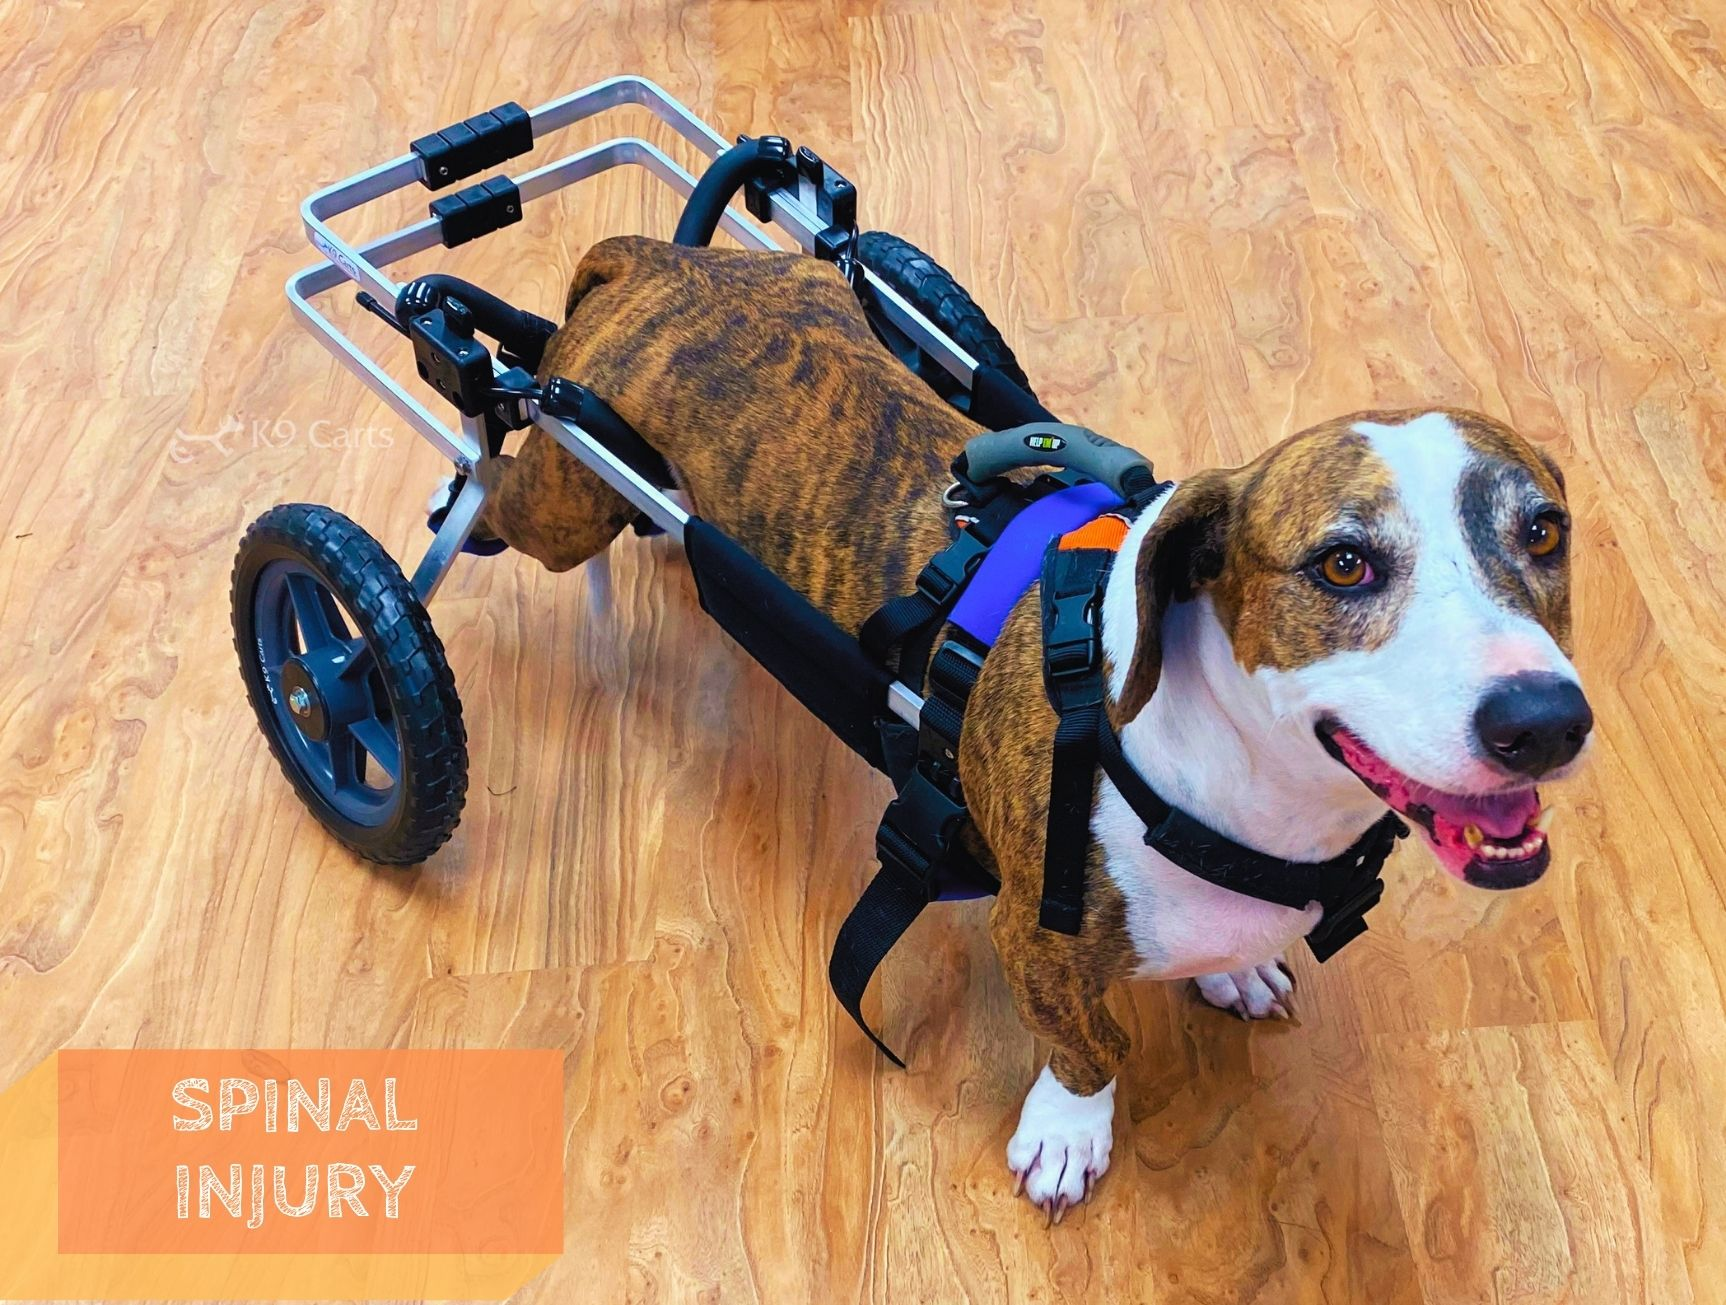 Dog with a spinal injury